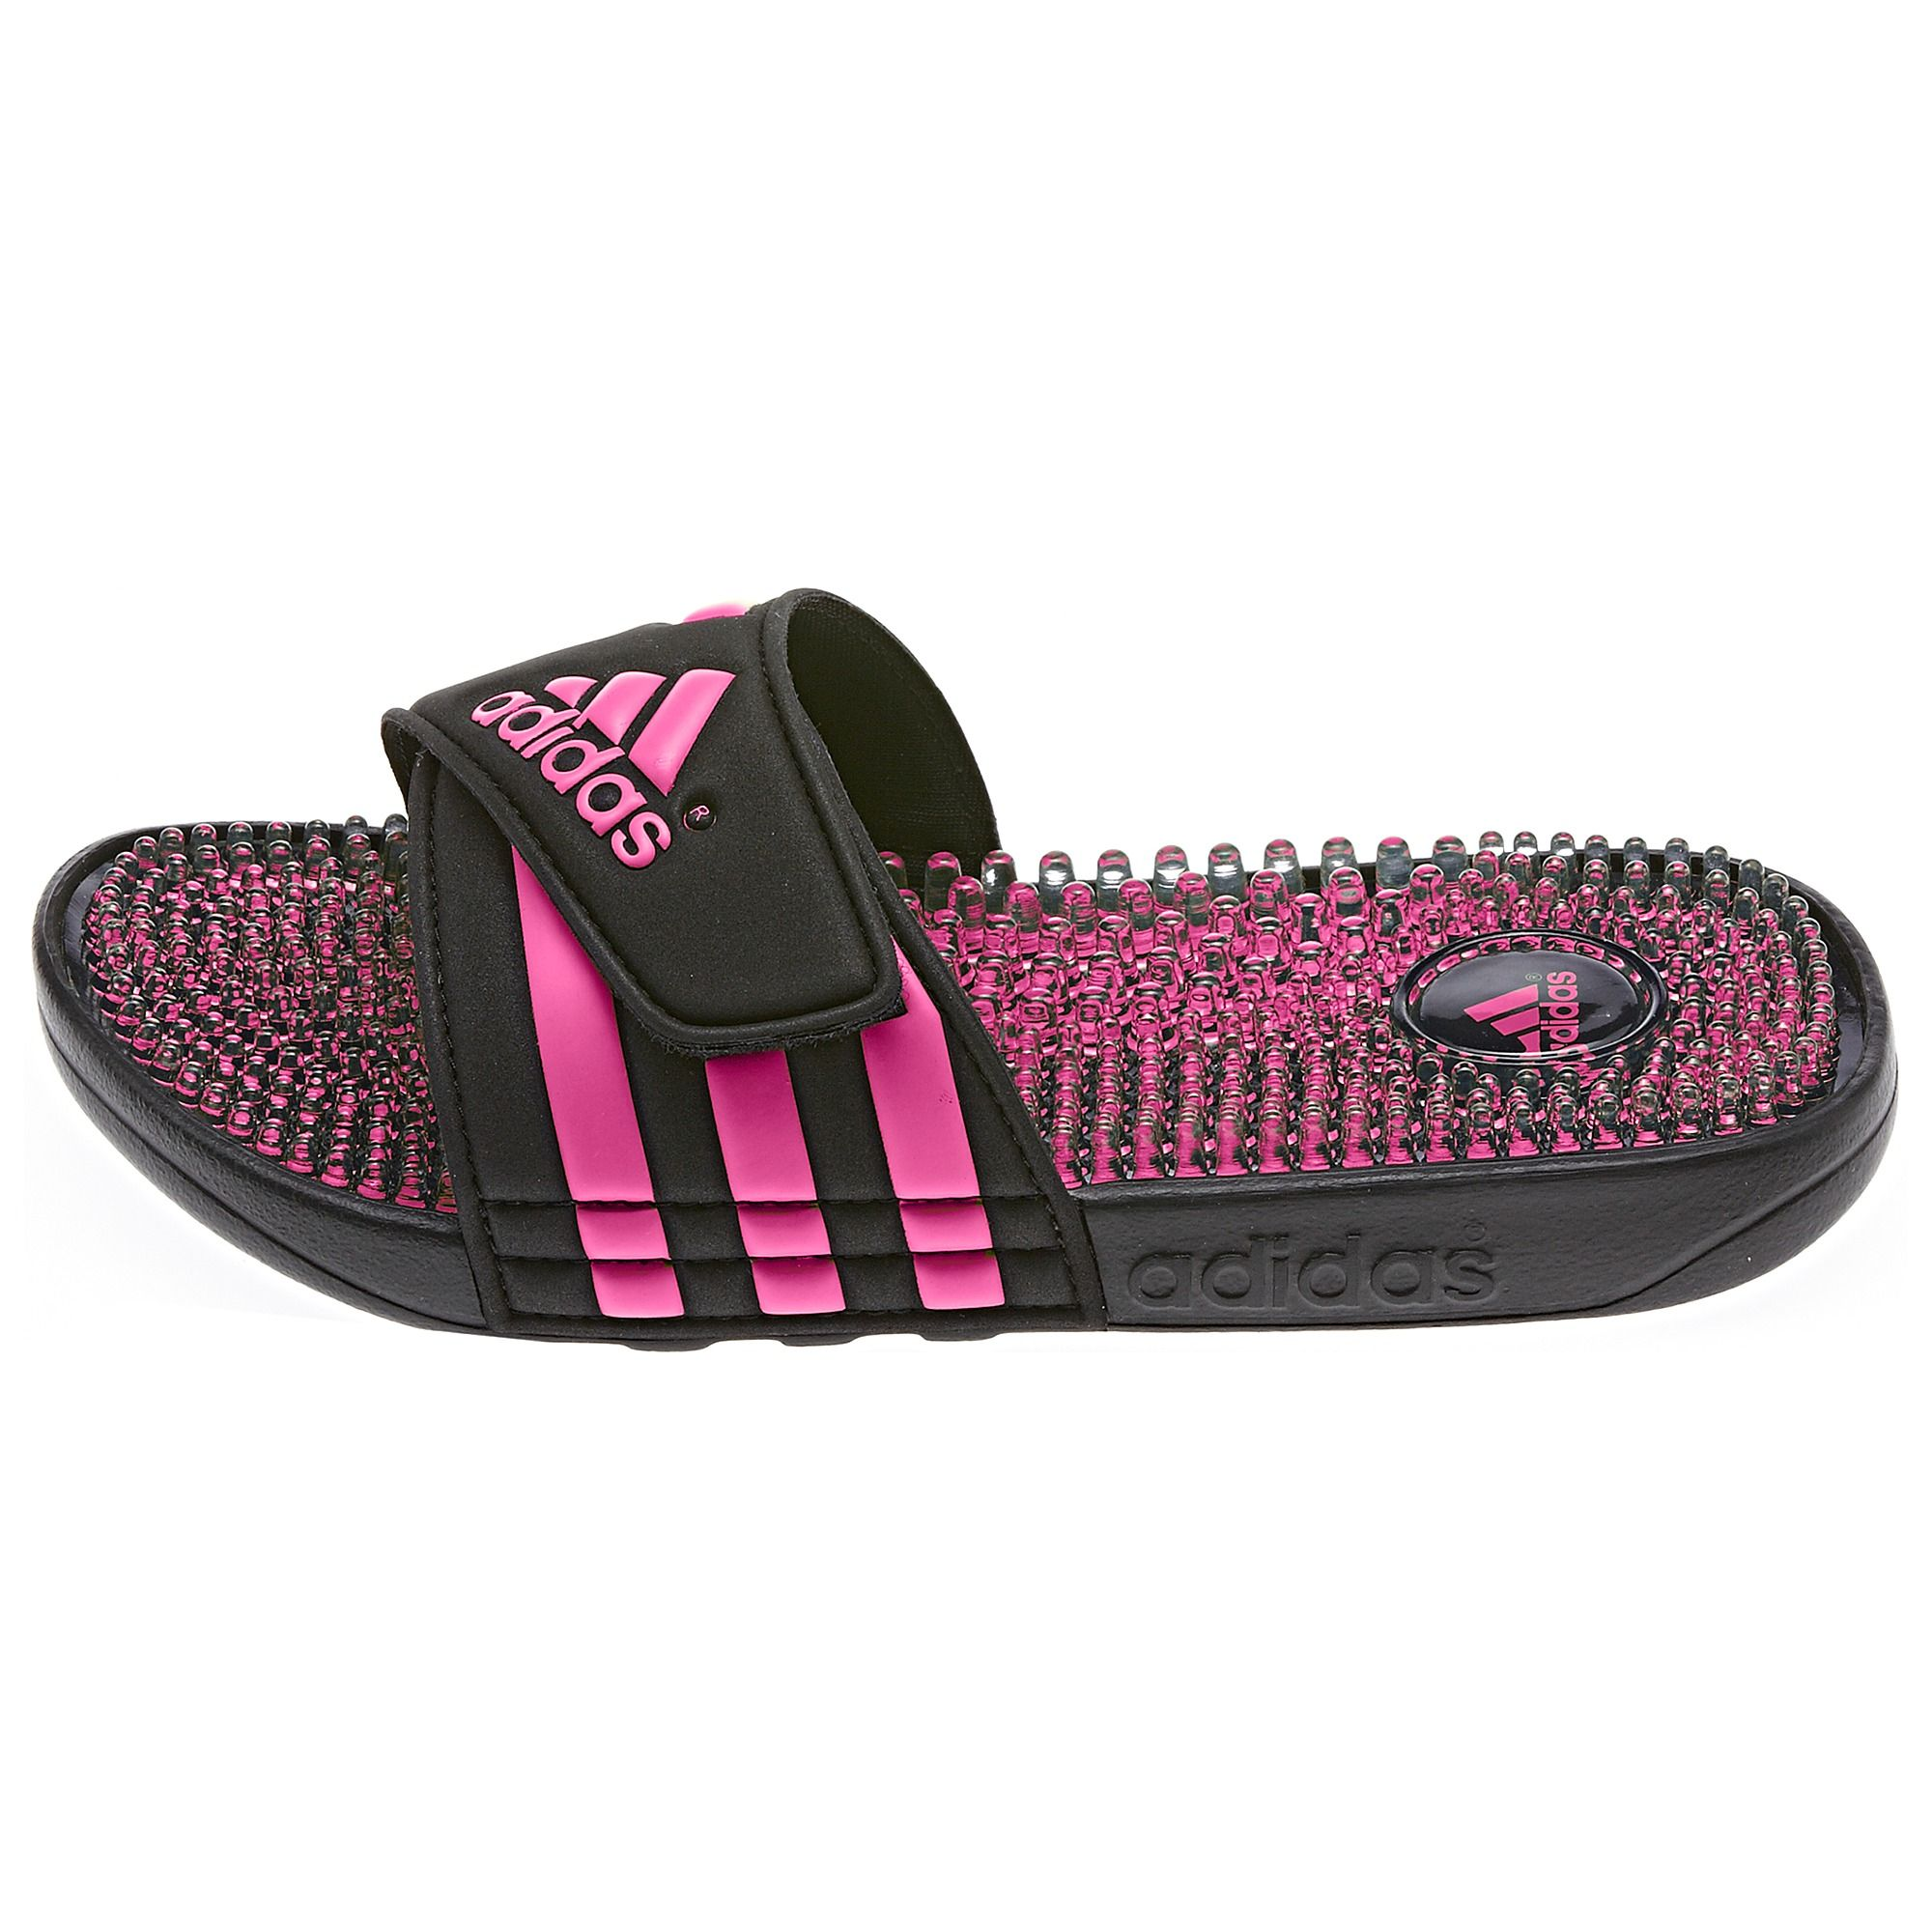 7986ea4db632ff The new midsole design of these women s adissage Fade Slides by adidas  updates a popular massage slide style and features a cool new fade print on  the ...